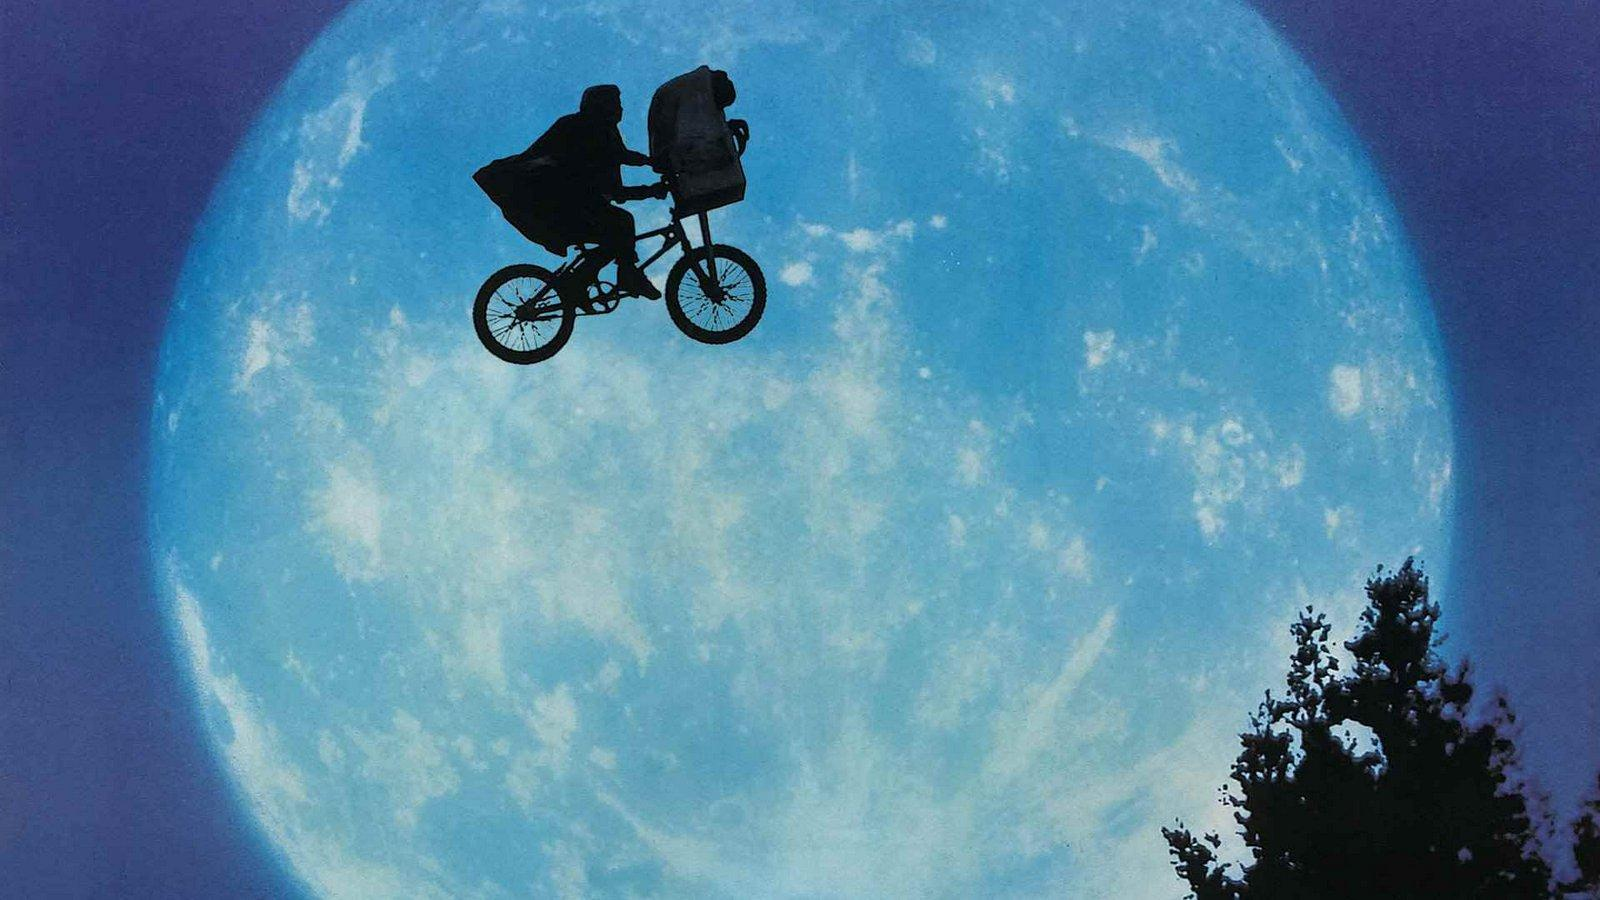 Dinner and a movie: 'E.T. the Extra